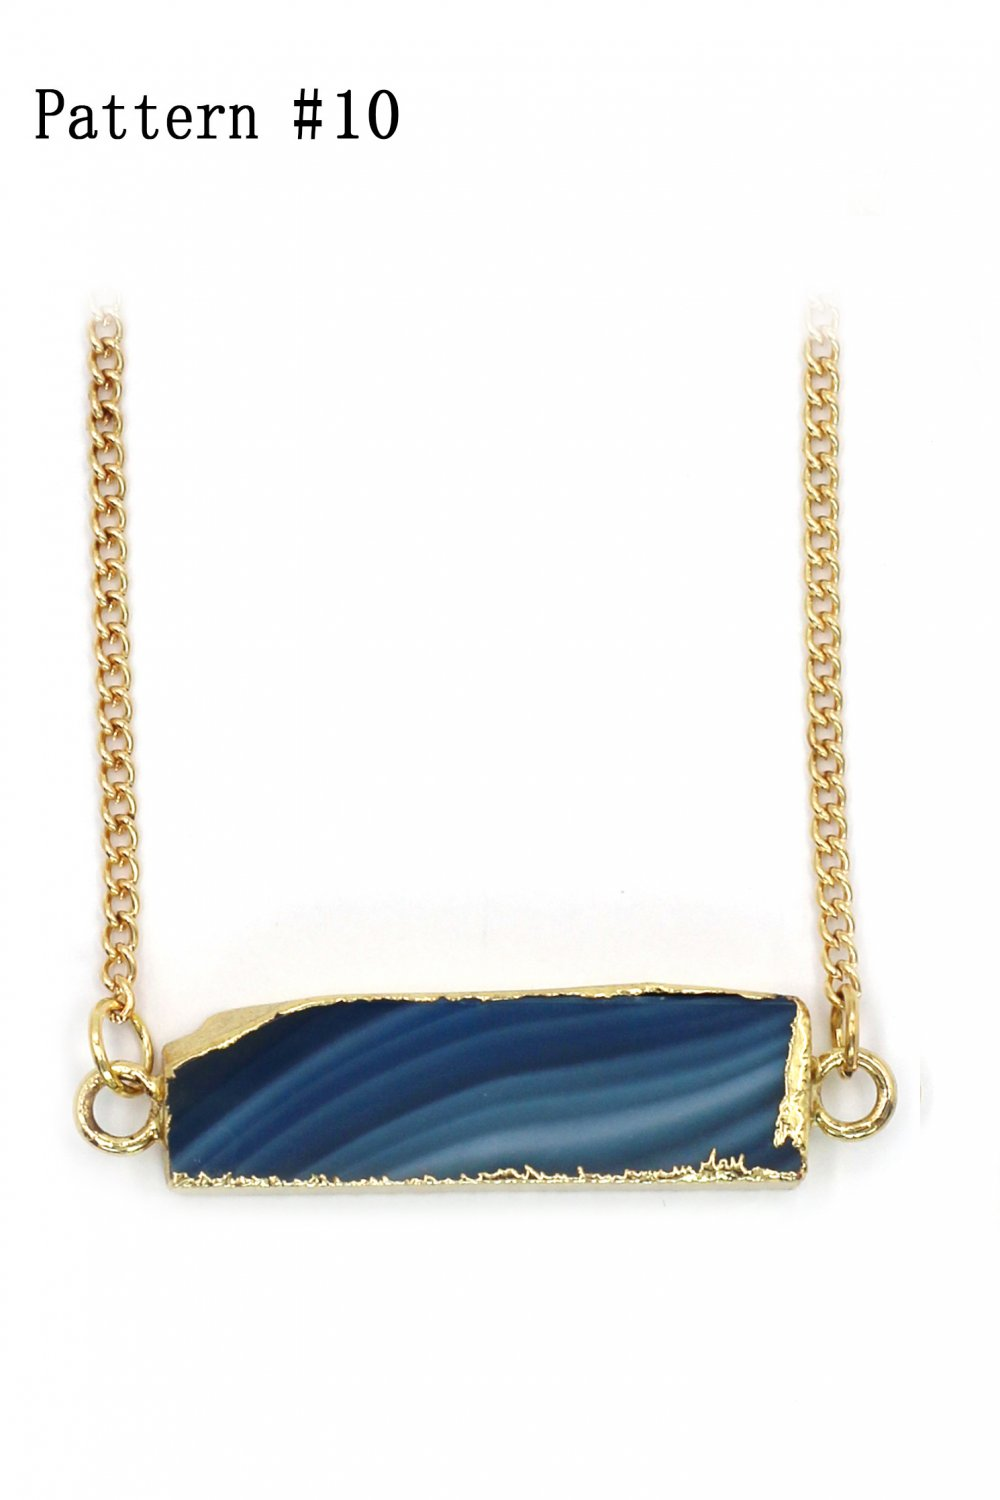 Fashion natural stone golden necklace Pattern #10